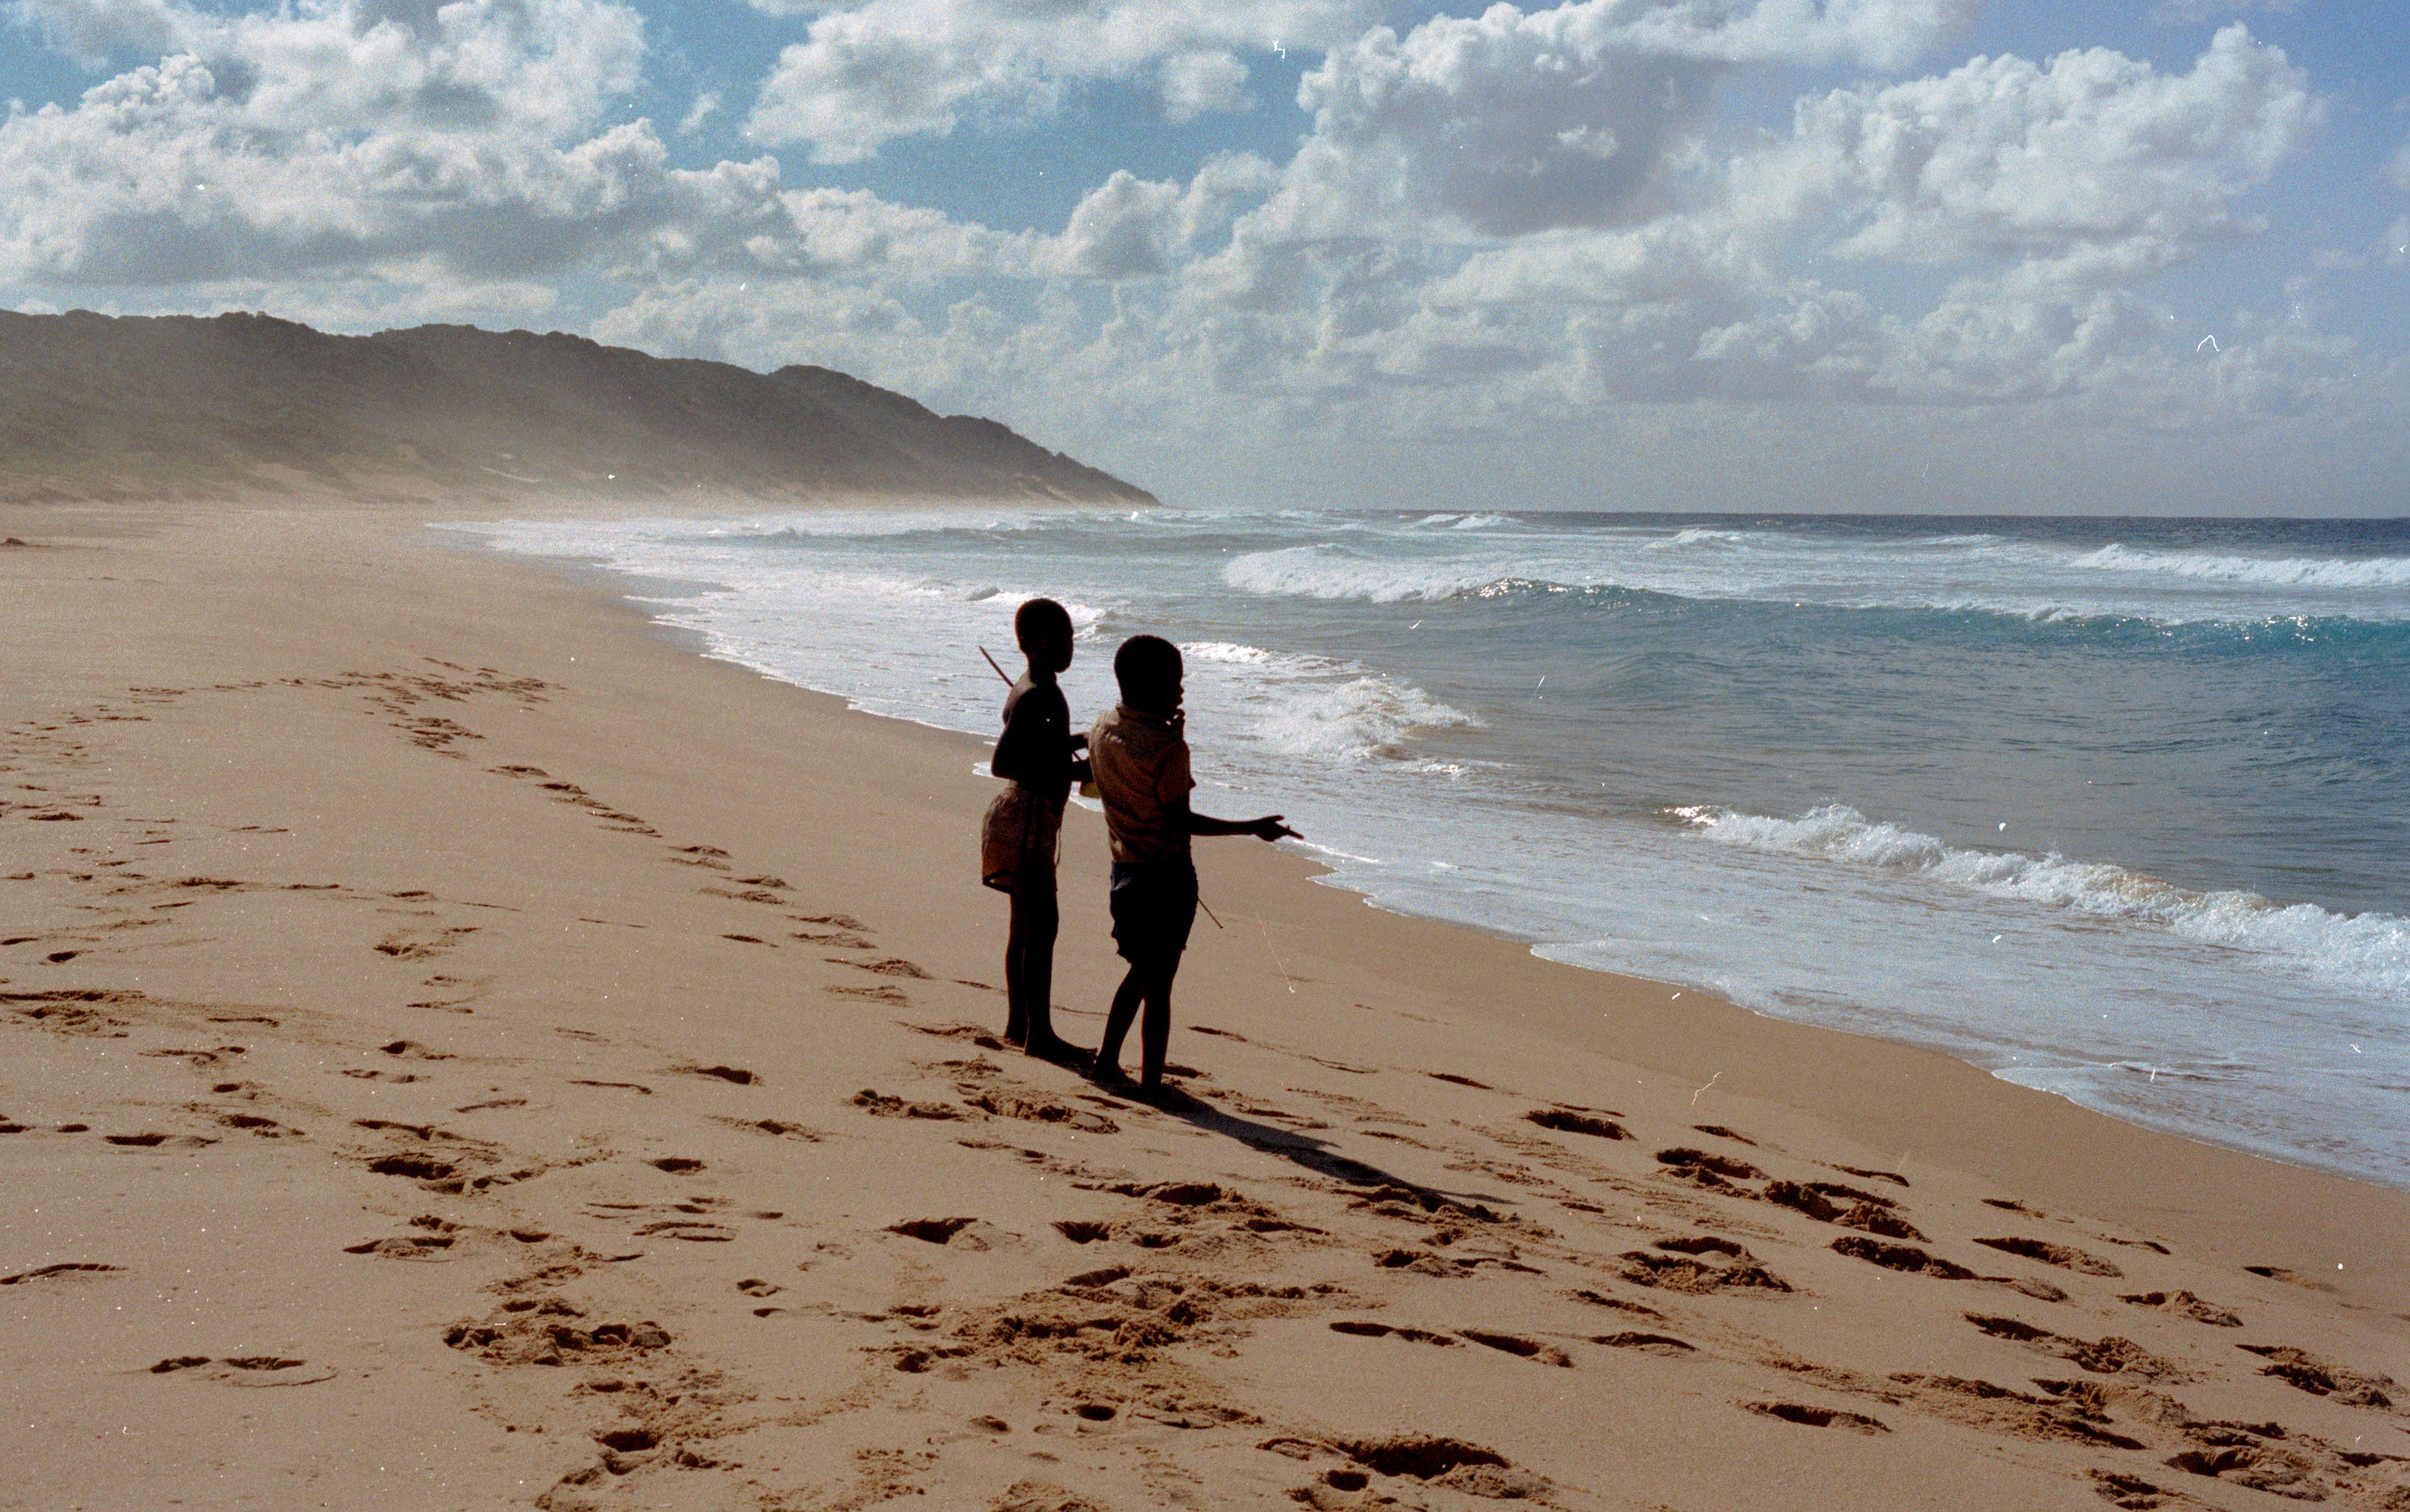 Two Children Stands on Shore Near Ocean at Daytime